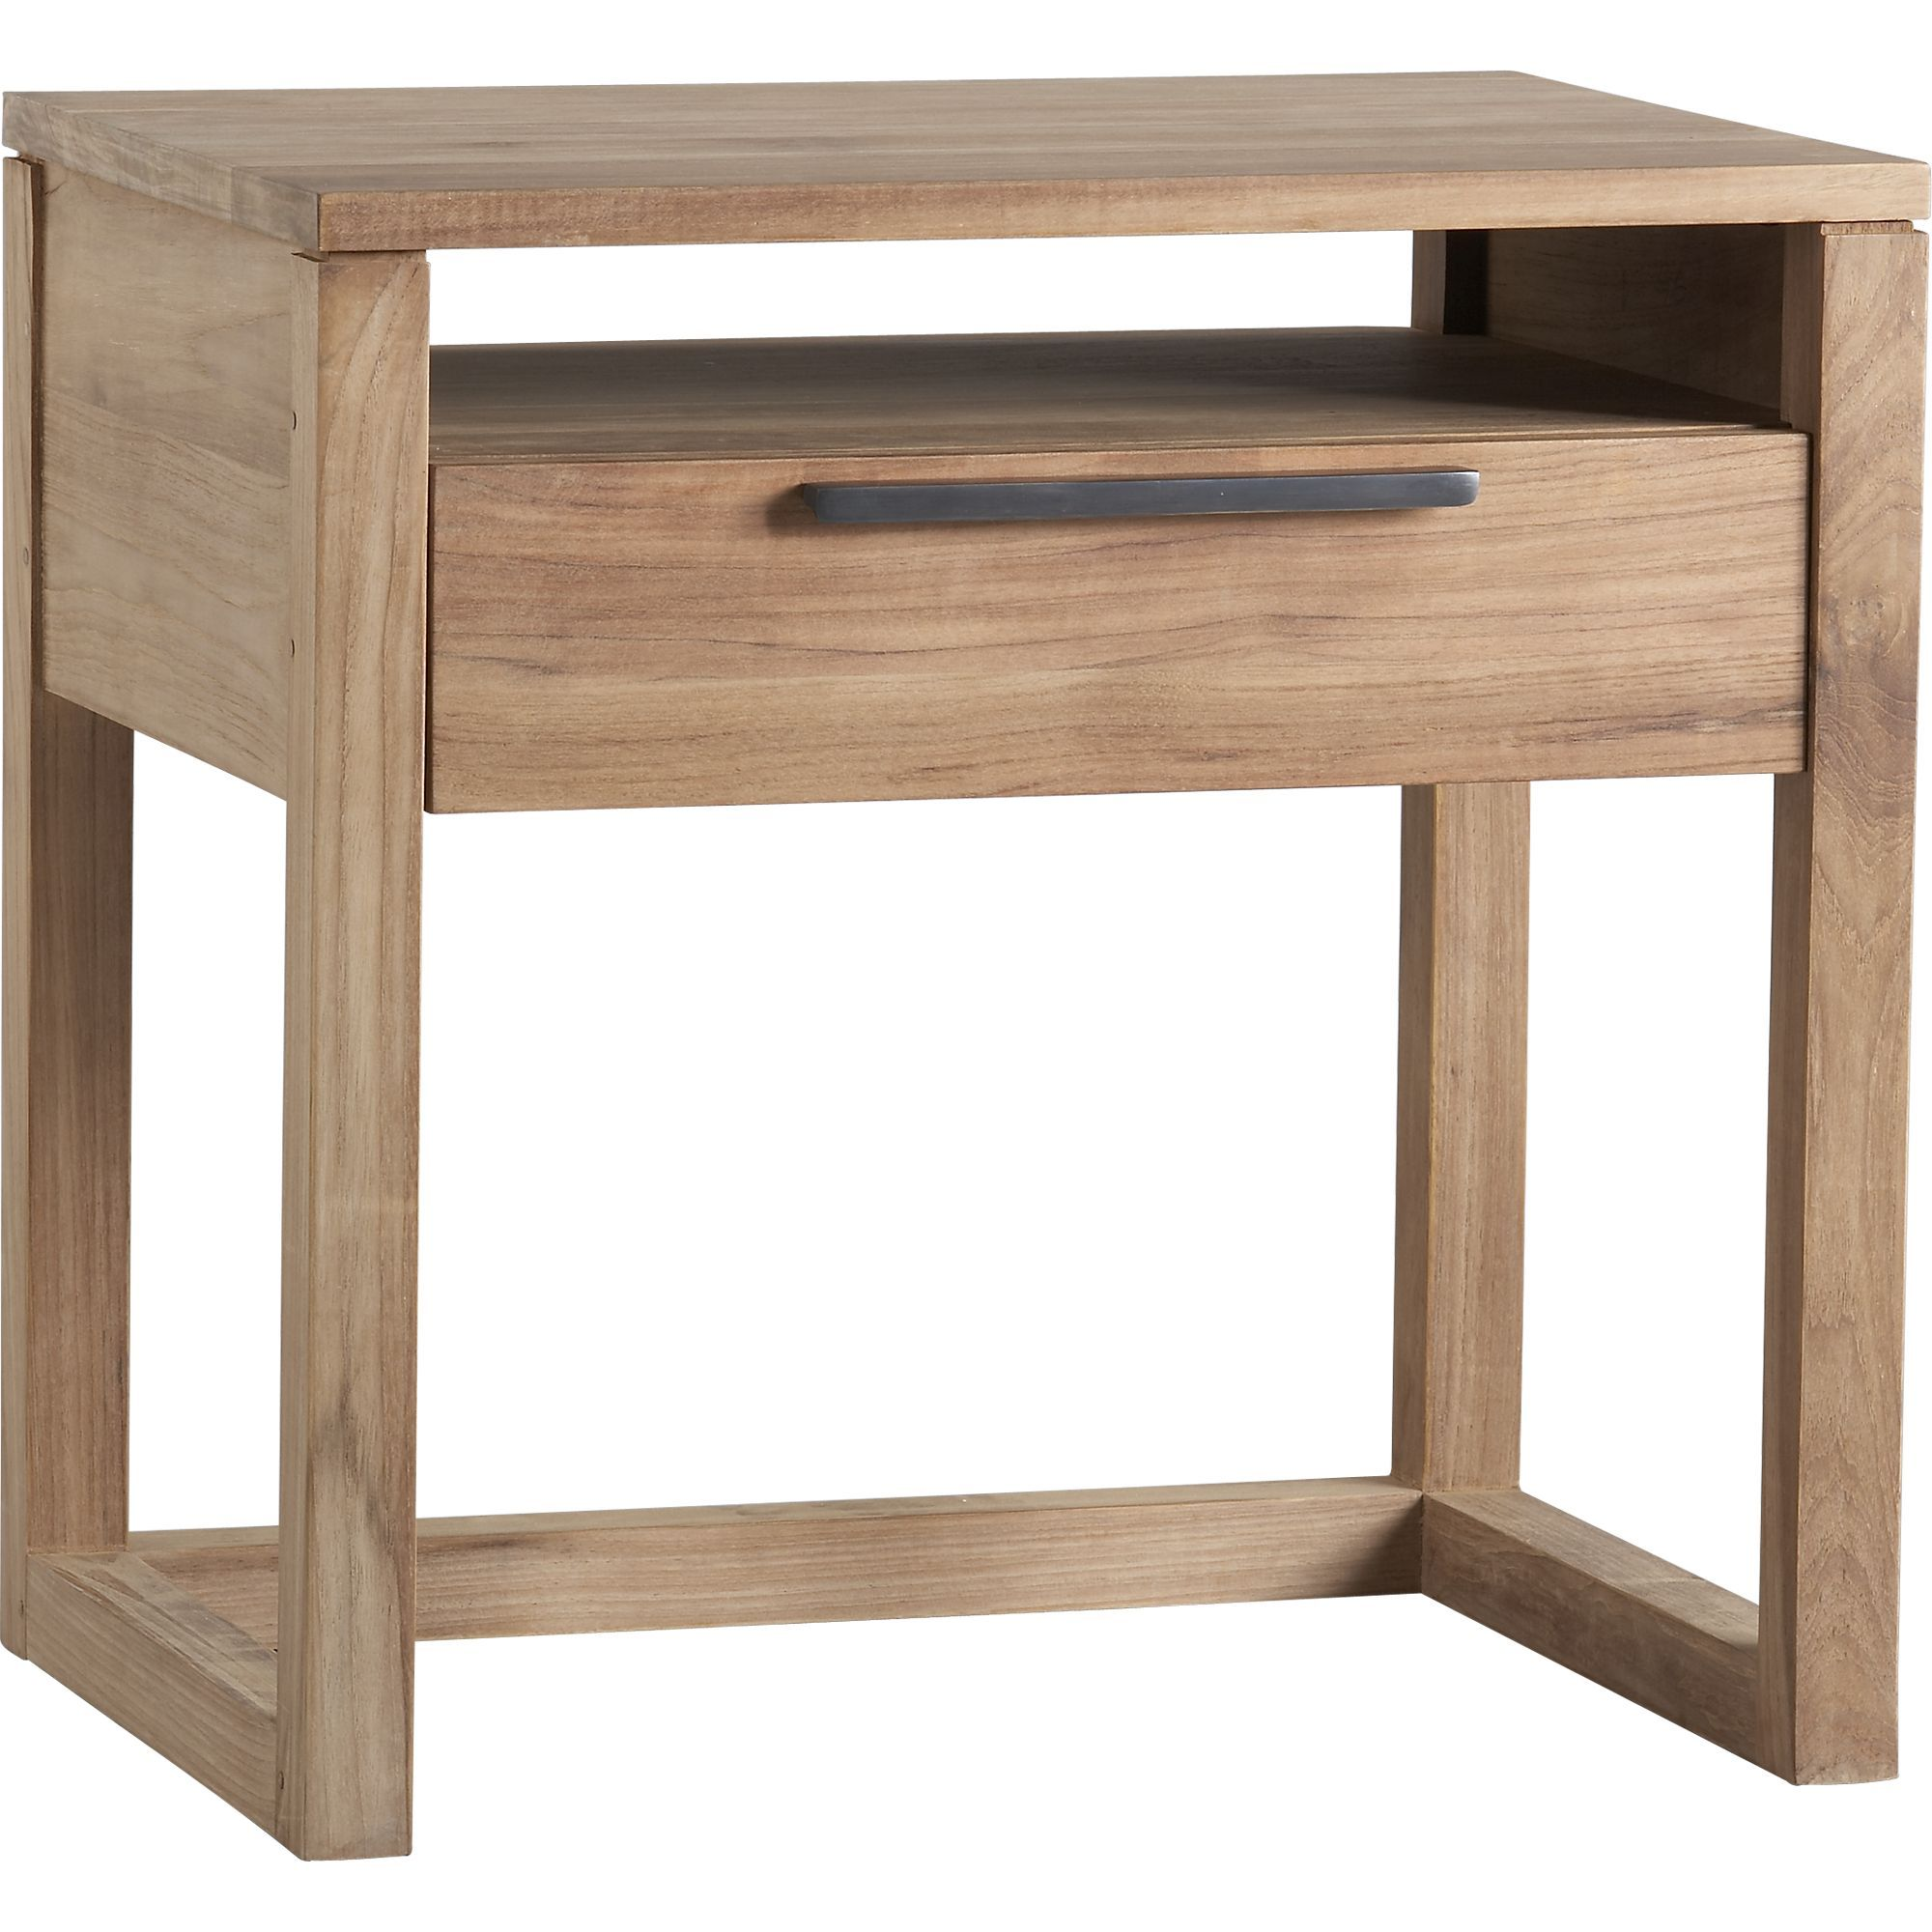 Linea 1Drawer Nightstand in Beds, Headboards Crate and